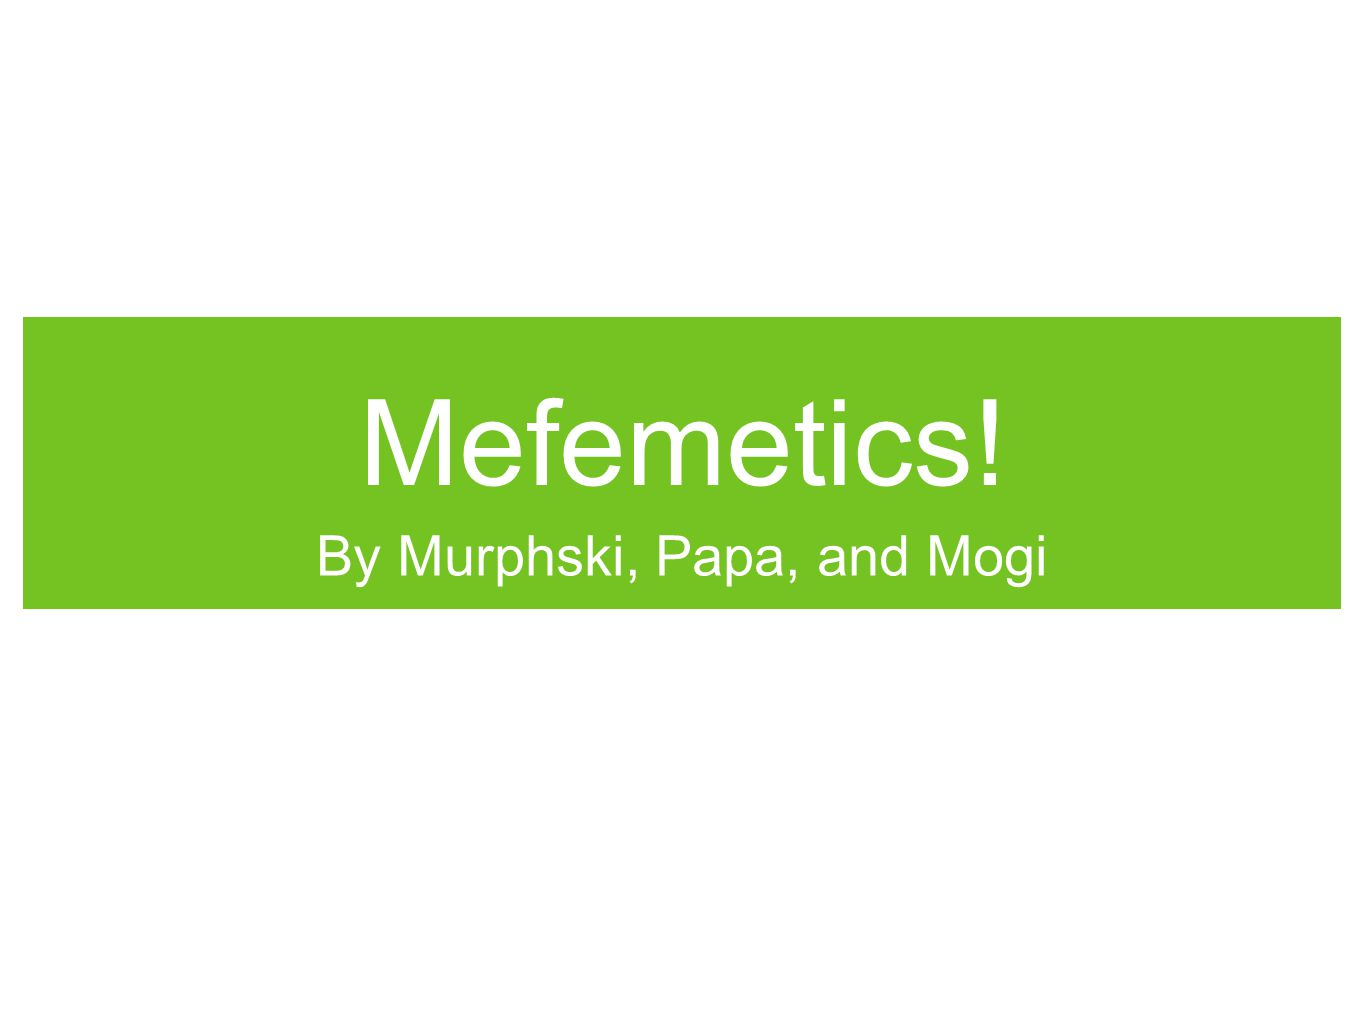 Mefemetics! By Murphski, Papa, and Mogi